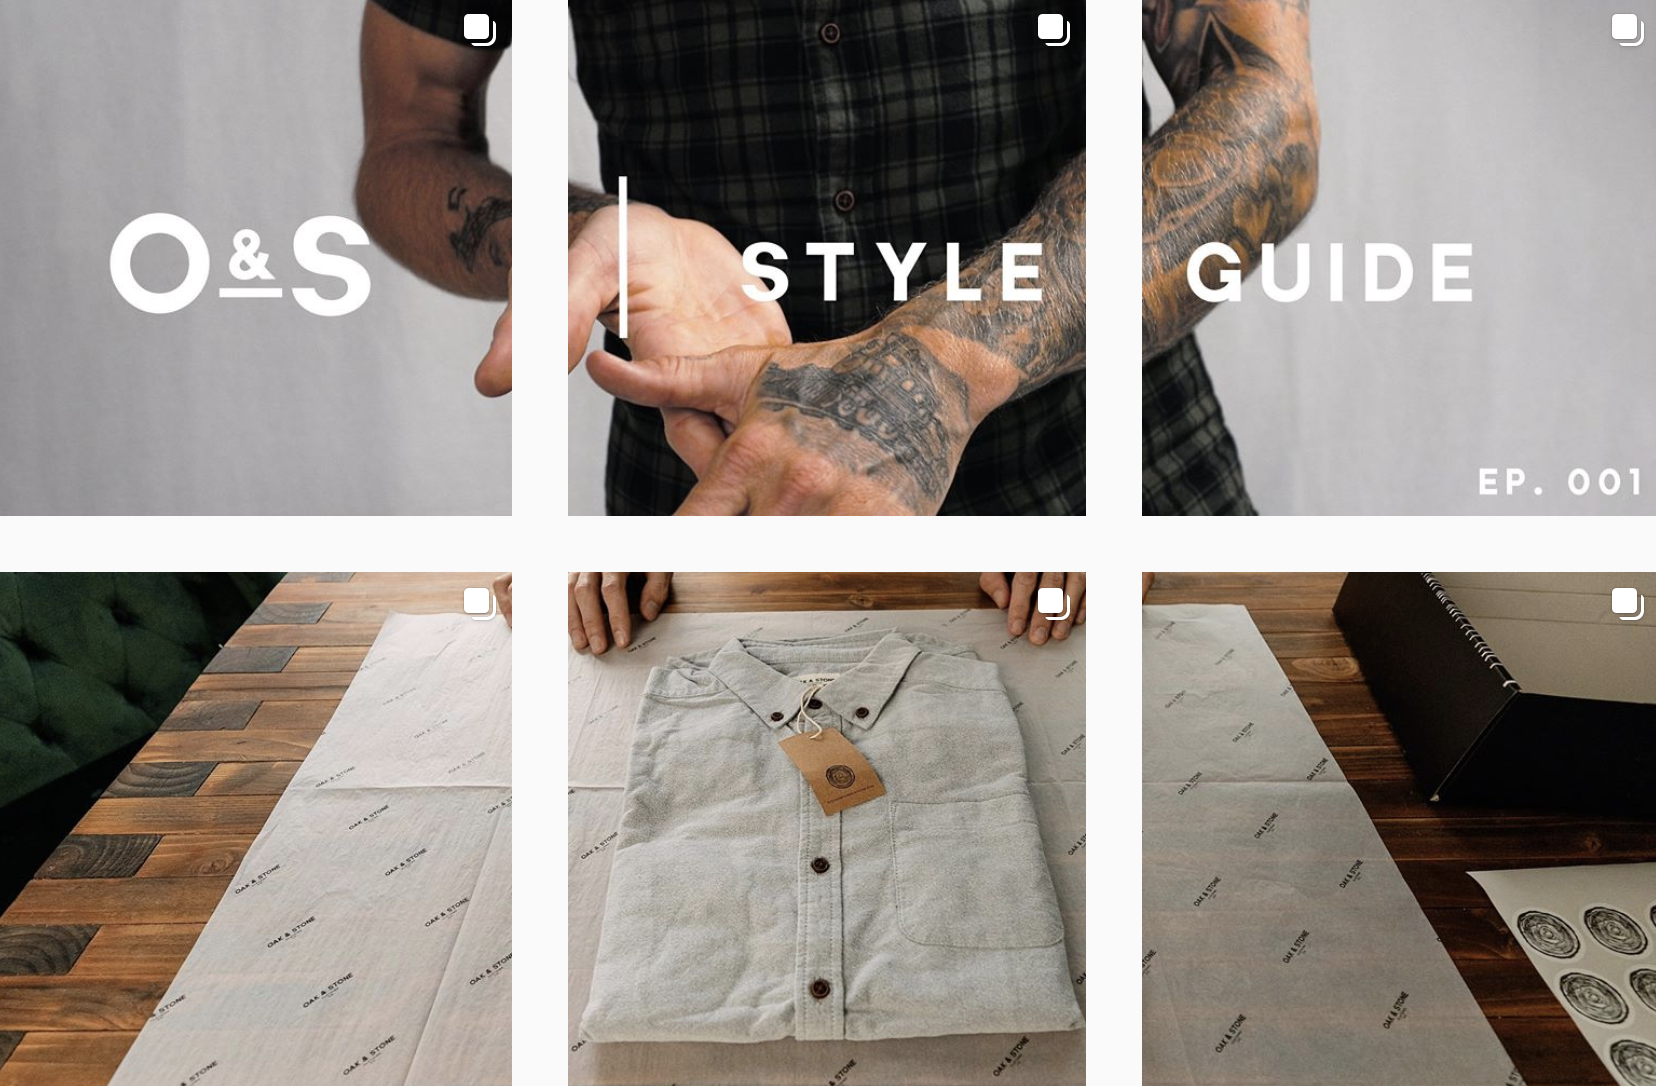 Oak & Stone Clothing Instagram feed